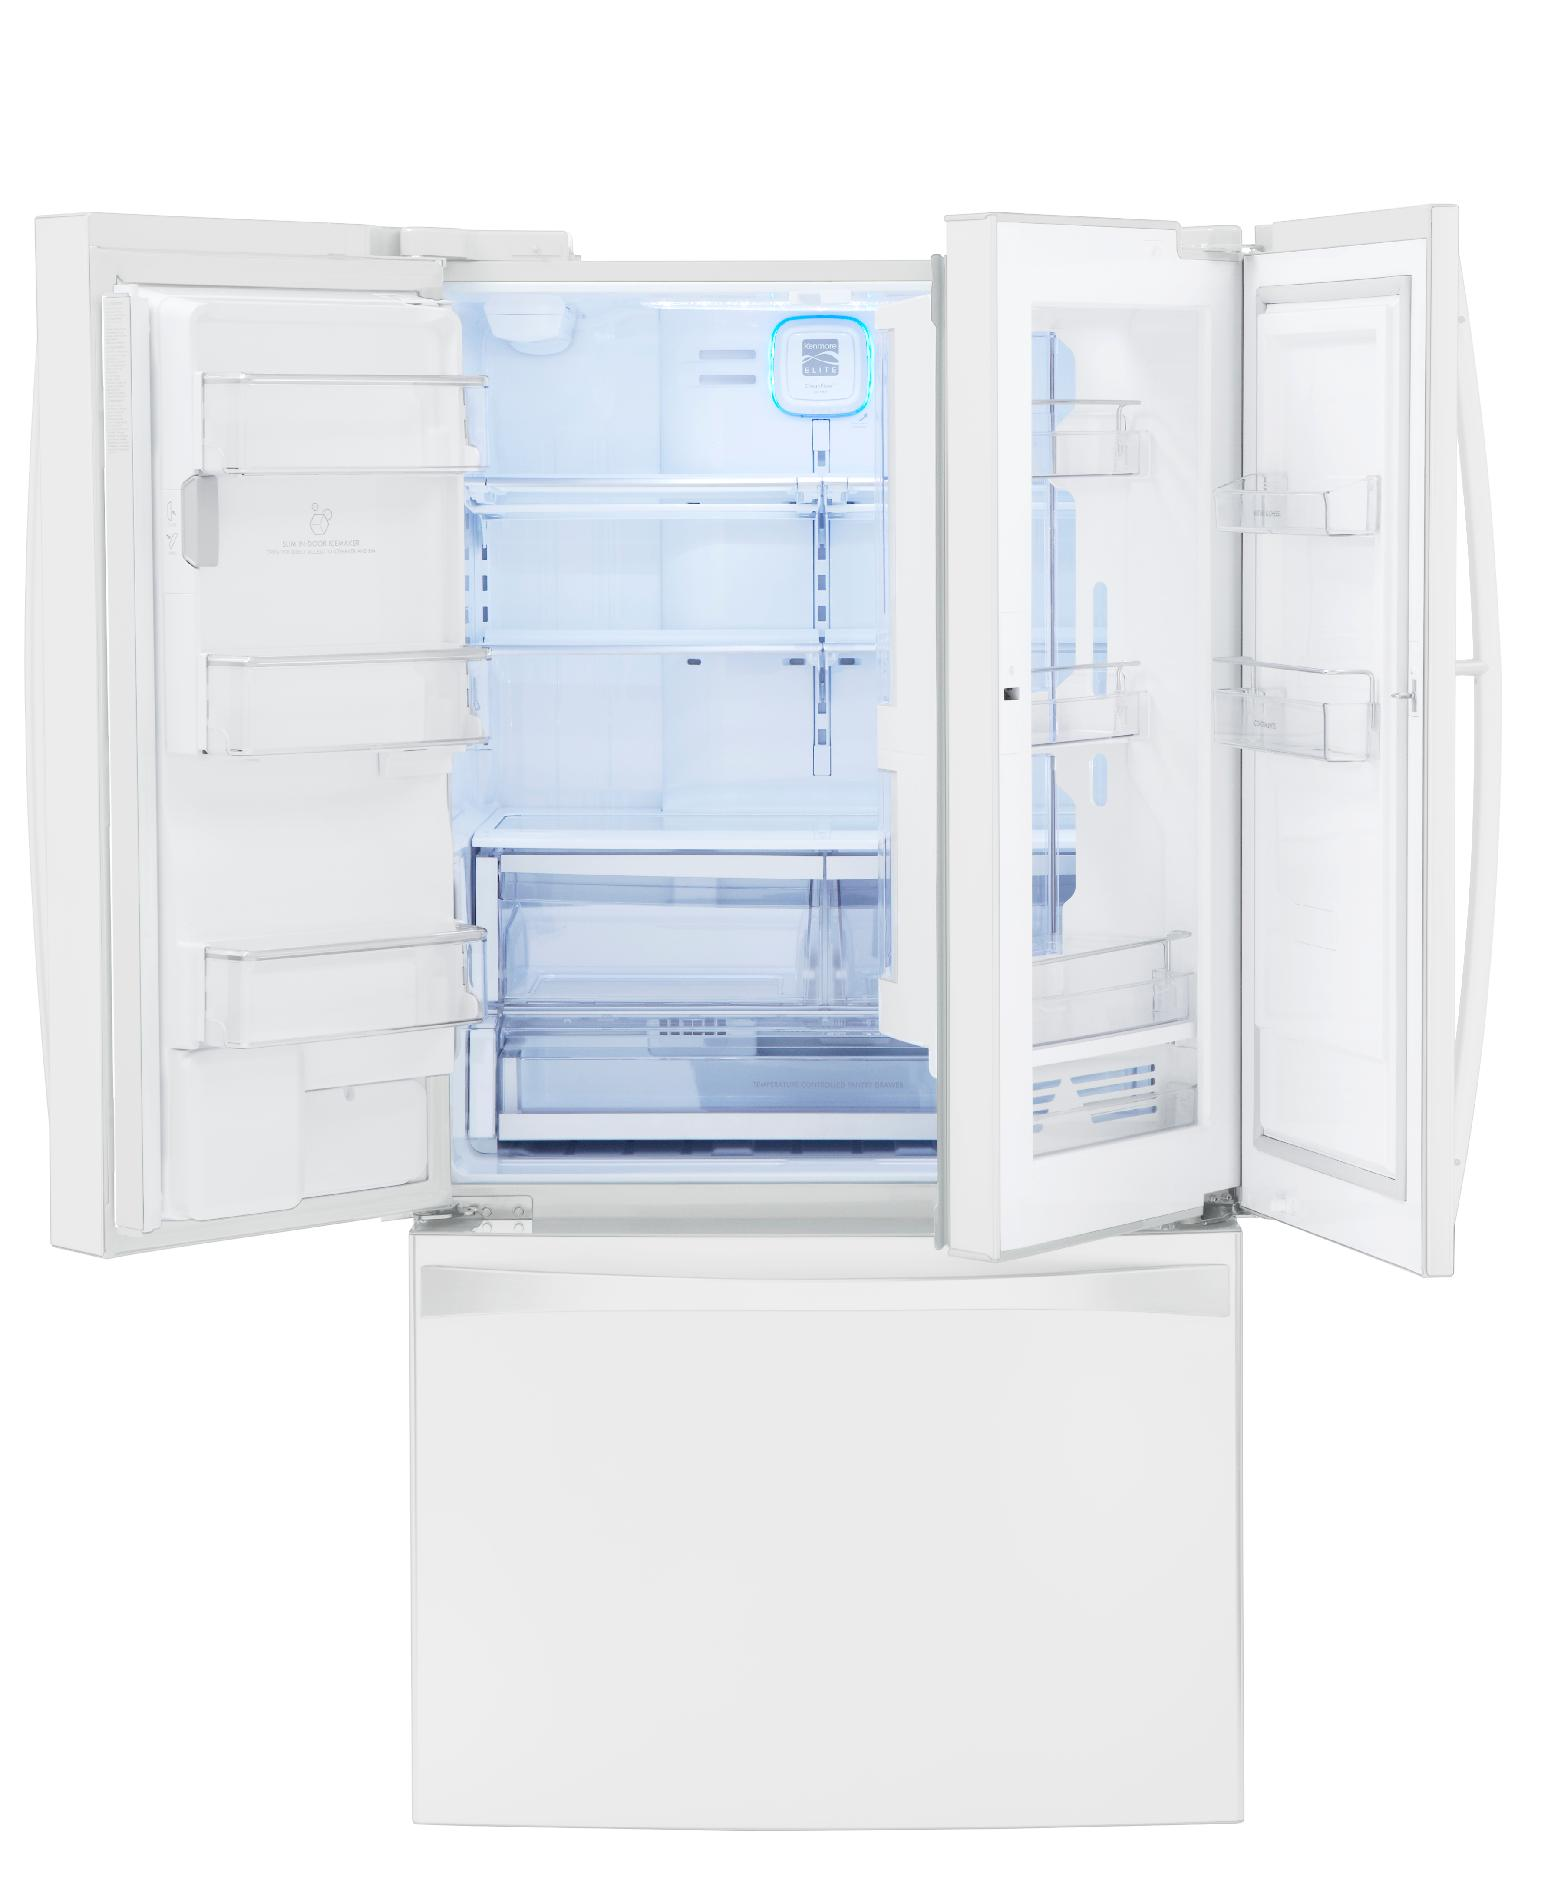 Kenmore Elite 29 cu. ft. Grab-N-Go French Door Bottom-Freezer Refrigerator - White